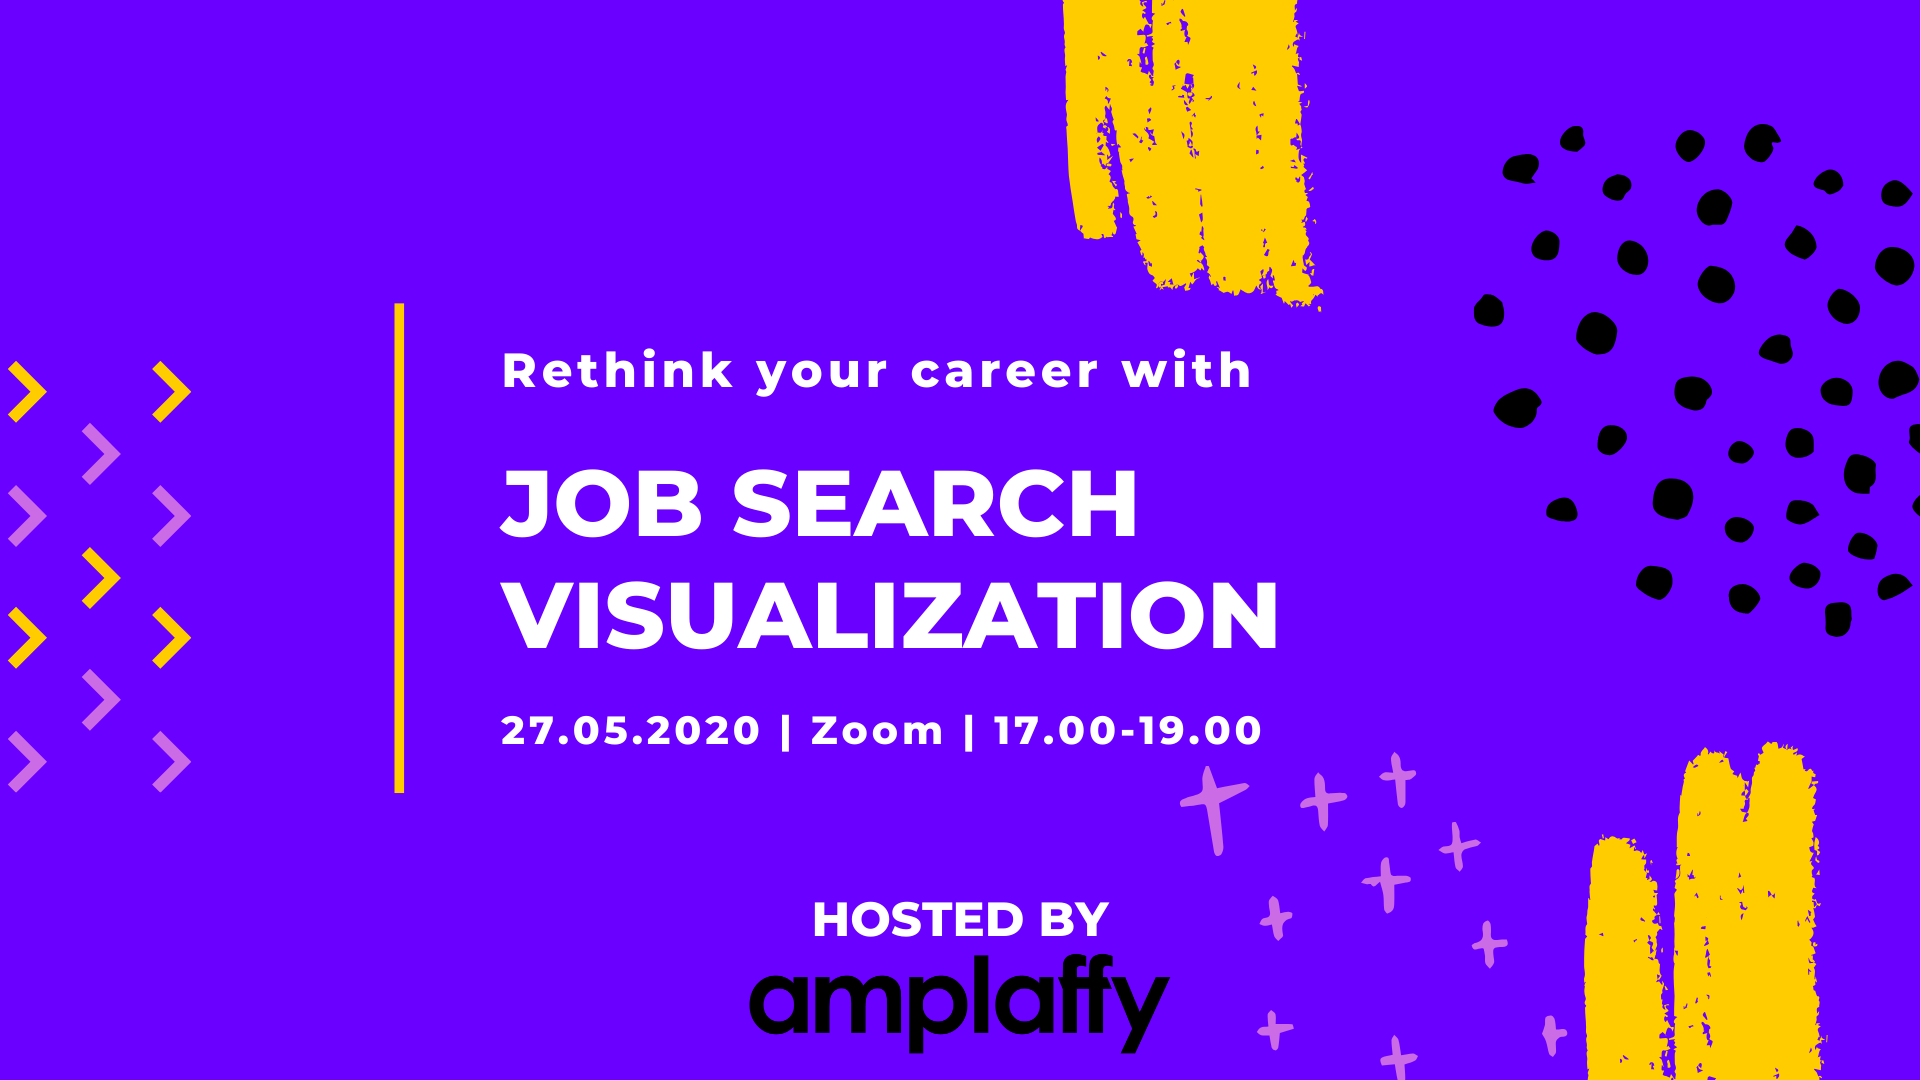 Watch how visualizing job description data can help with your job search.